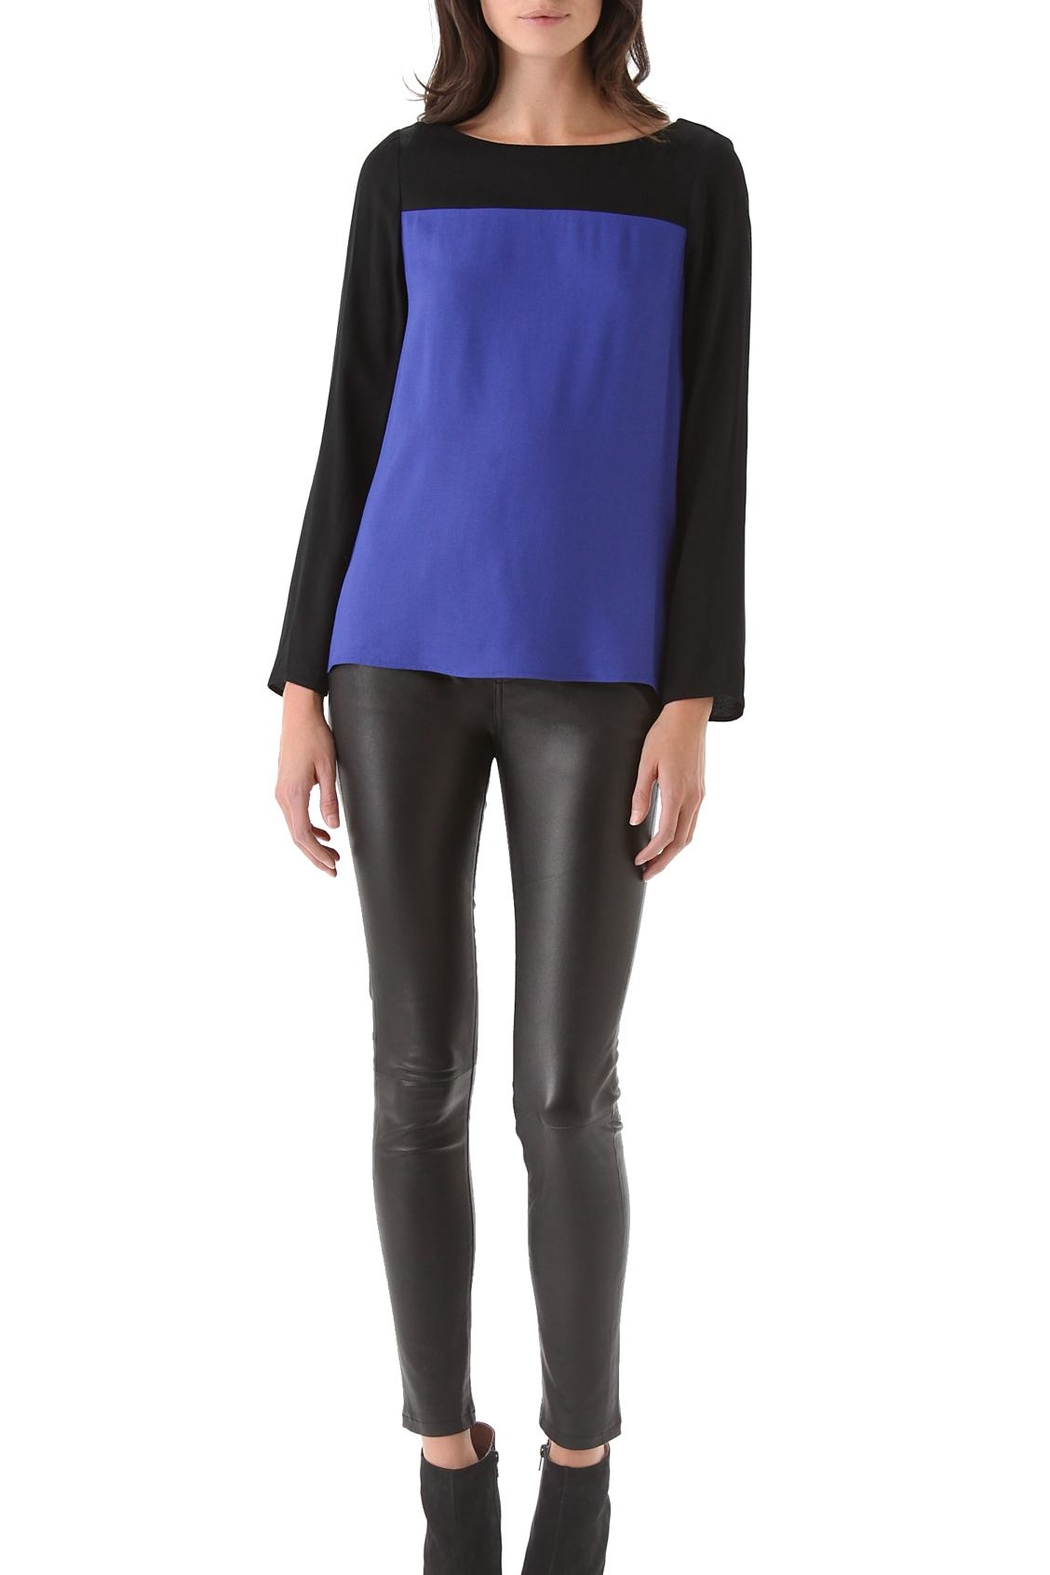 Joie Aliso Blouse - Front Full Image